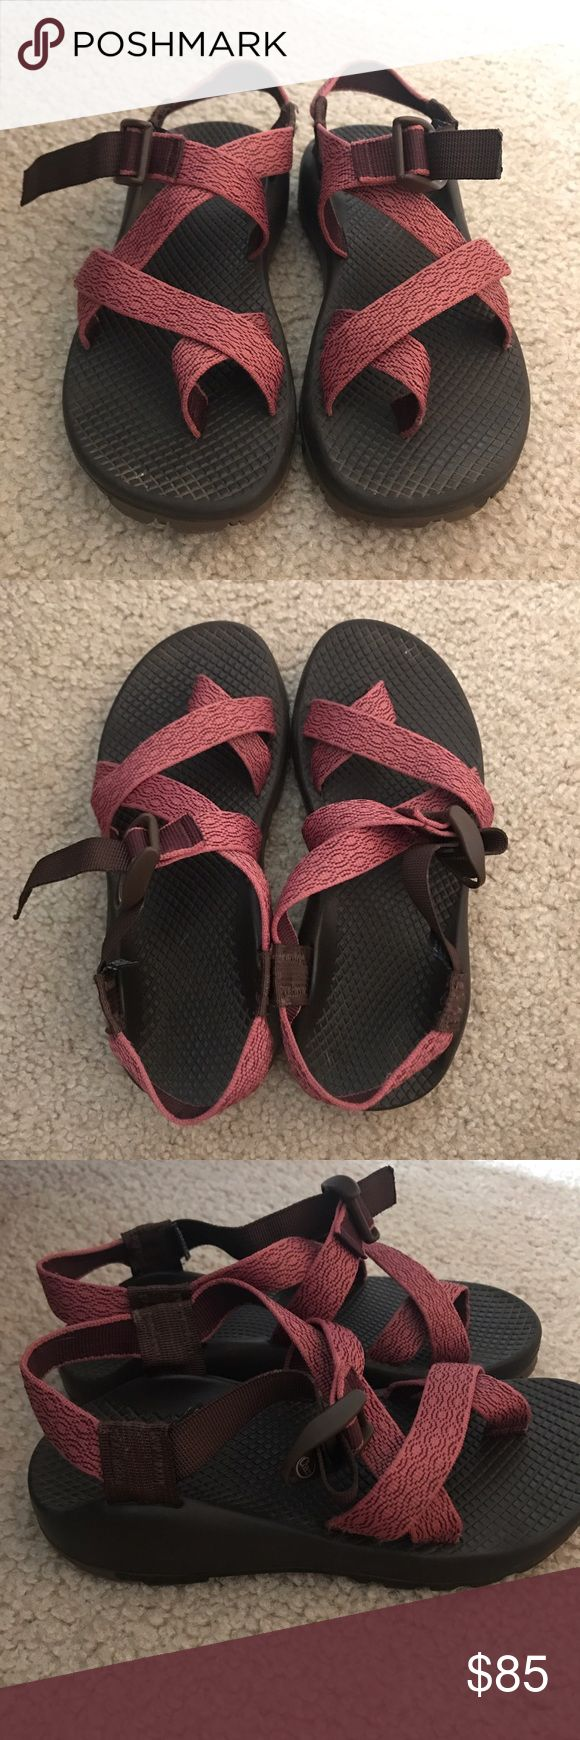 Woman's Chaco Sandals Selling previously worn Chaco sandals in a woman's size 6. No signs of wear - still in great condition! Loved these but just have use for them. Motivated to sell so make a reasonable offer :) Chaco Shoes Sandals